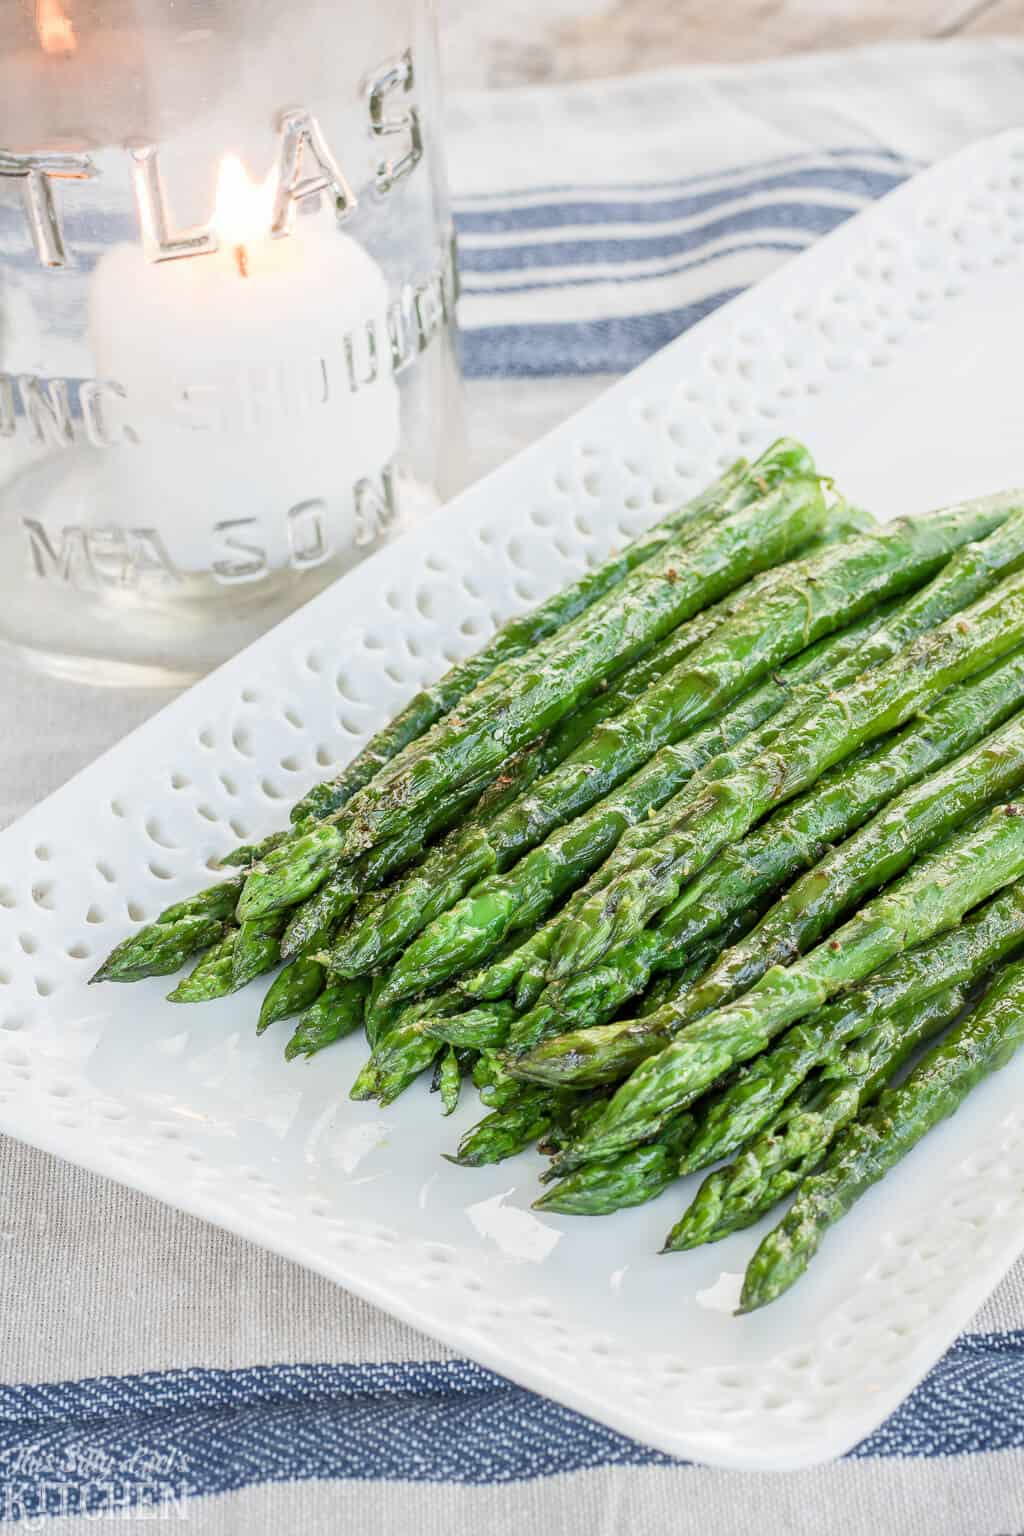 The Best Grilled Asparagus Recipe, made with 5 simple ingredients and ready in under 15 minutes! #Recipe from ThisSillyGirlsKitchen.com #asparagus #grilledasparagus